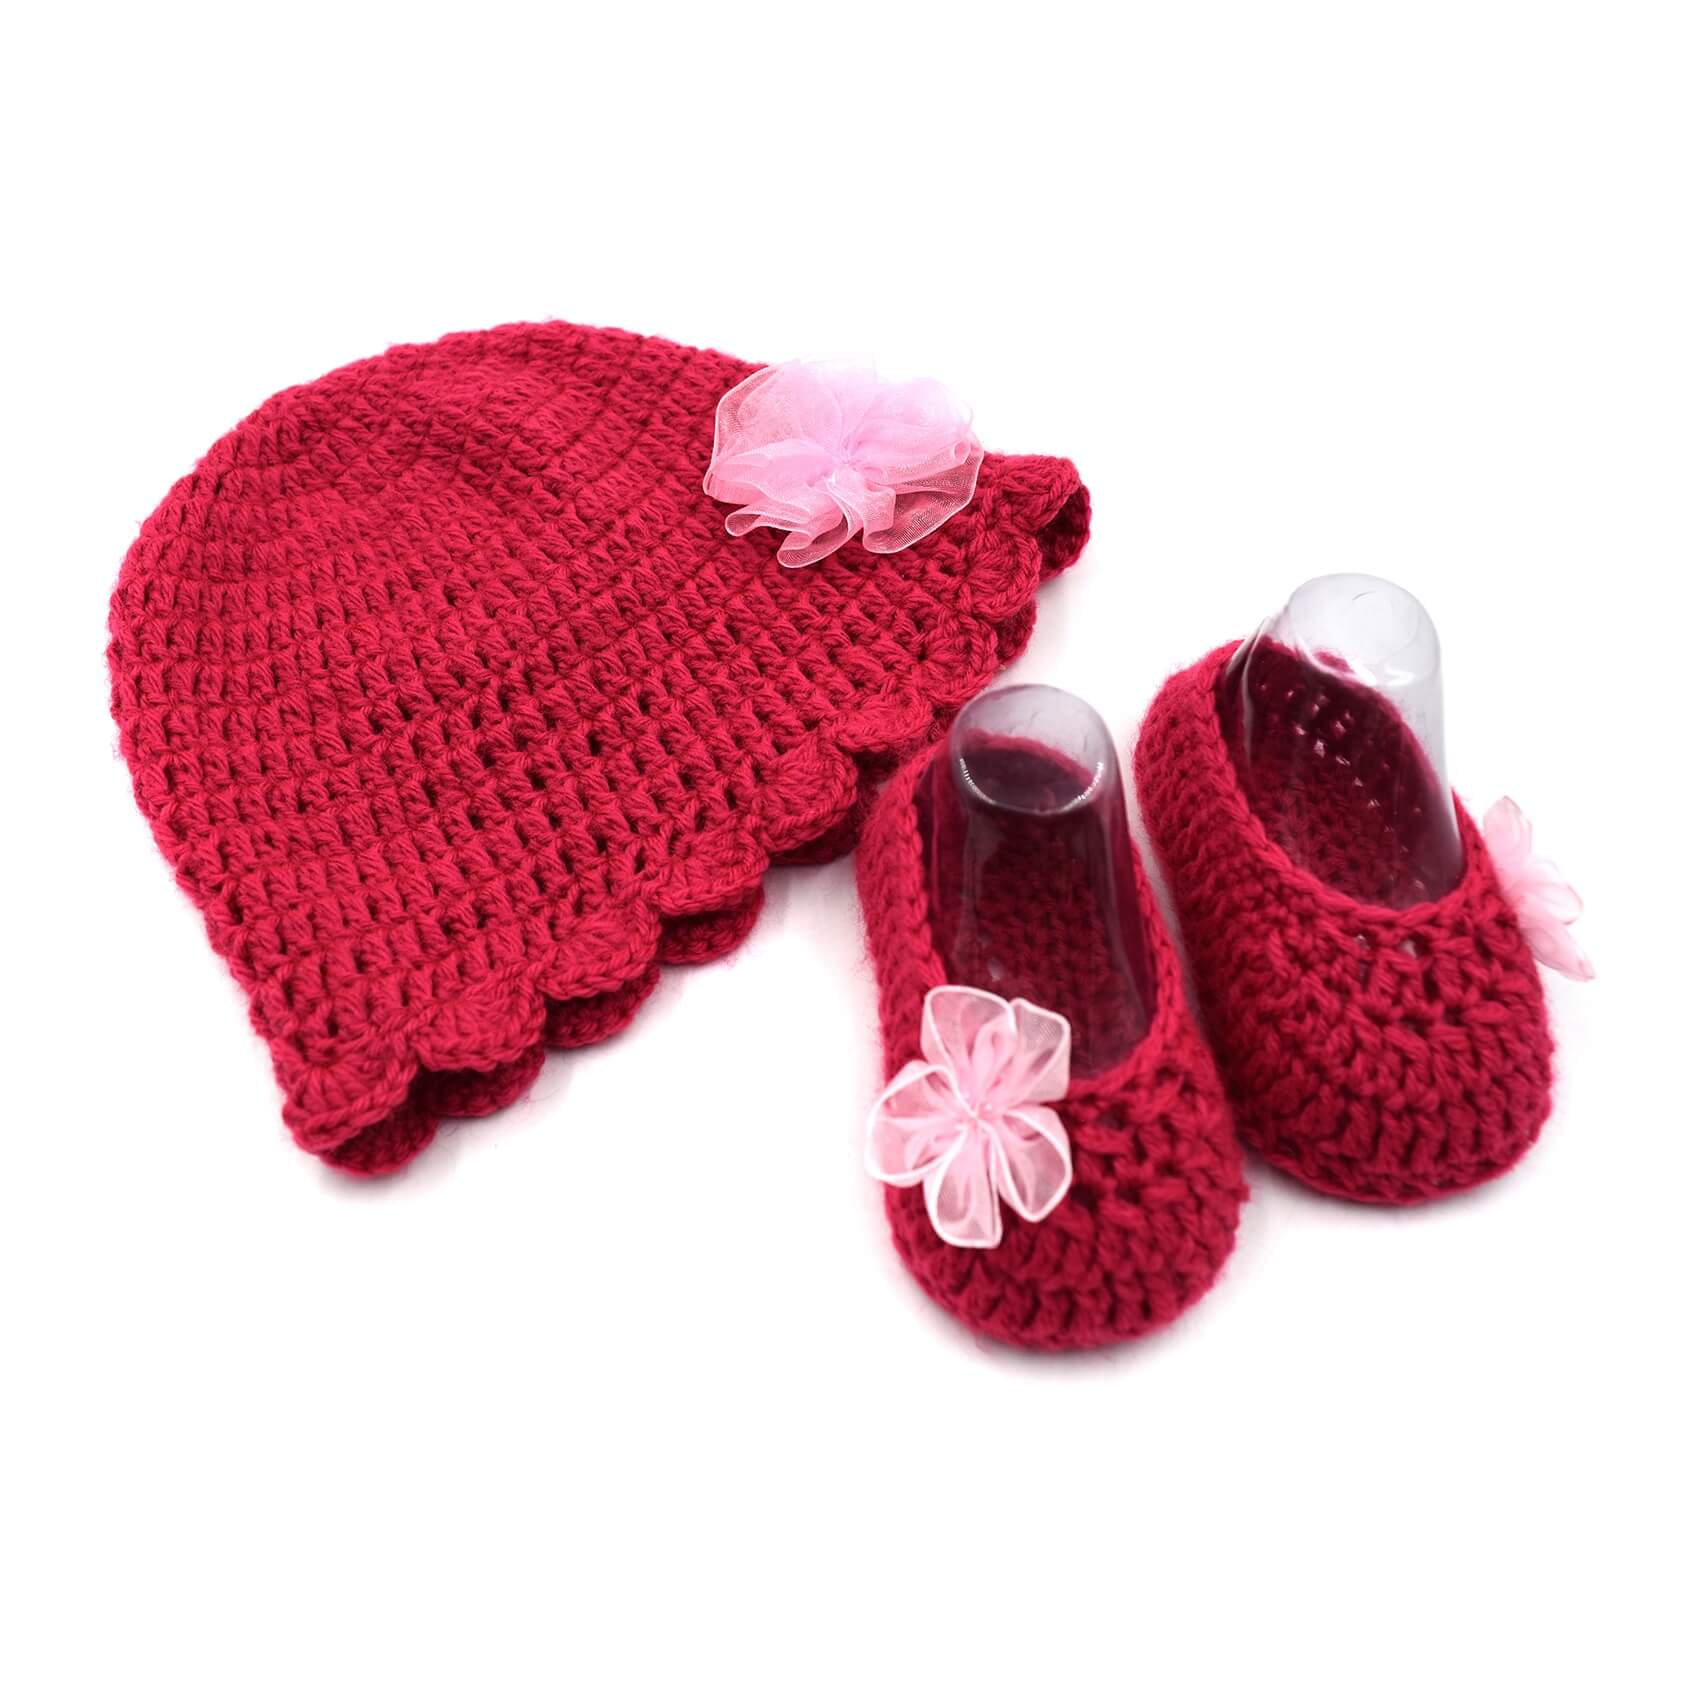 a7c390e14a3 Baby Cap   Booties Set - Pink • Magic Needles ® - Exclusively Handmade